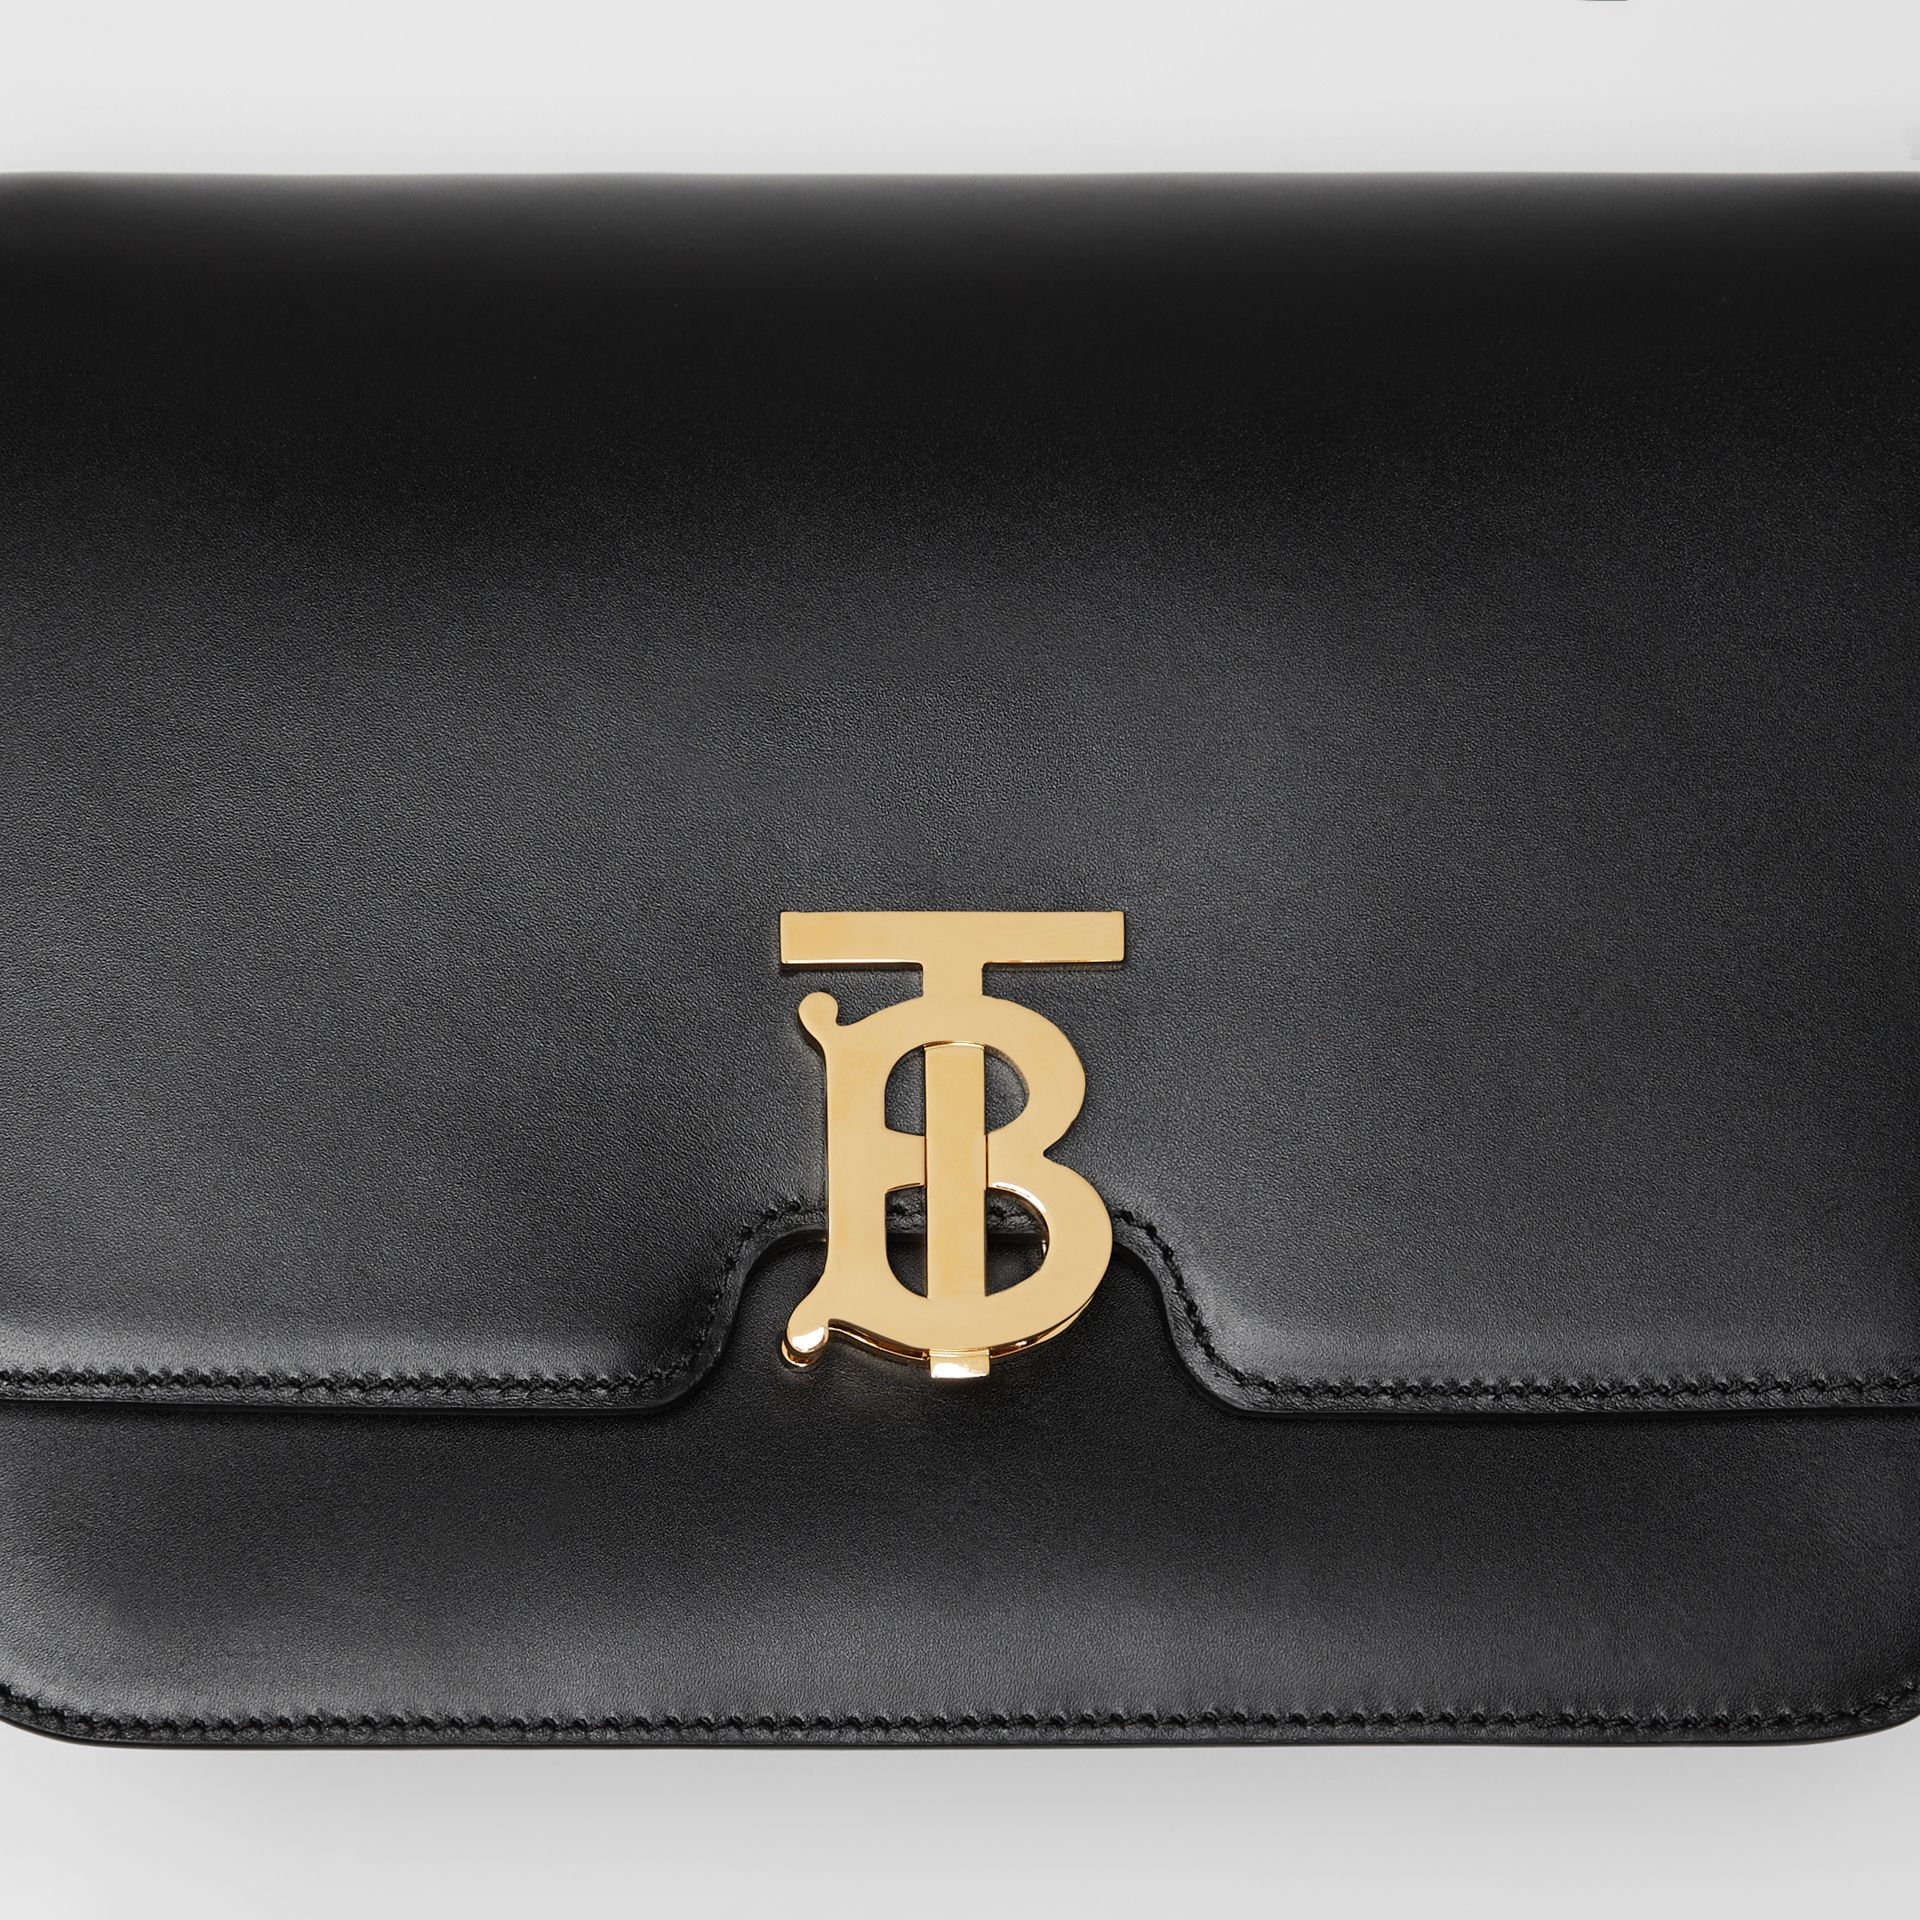 Medium Leather TB Bag in Black - Women | Burberry - gallery image 1